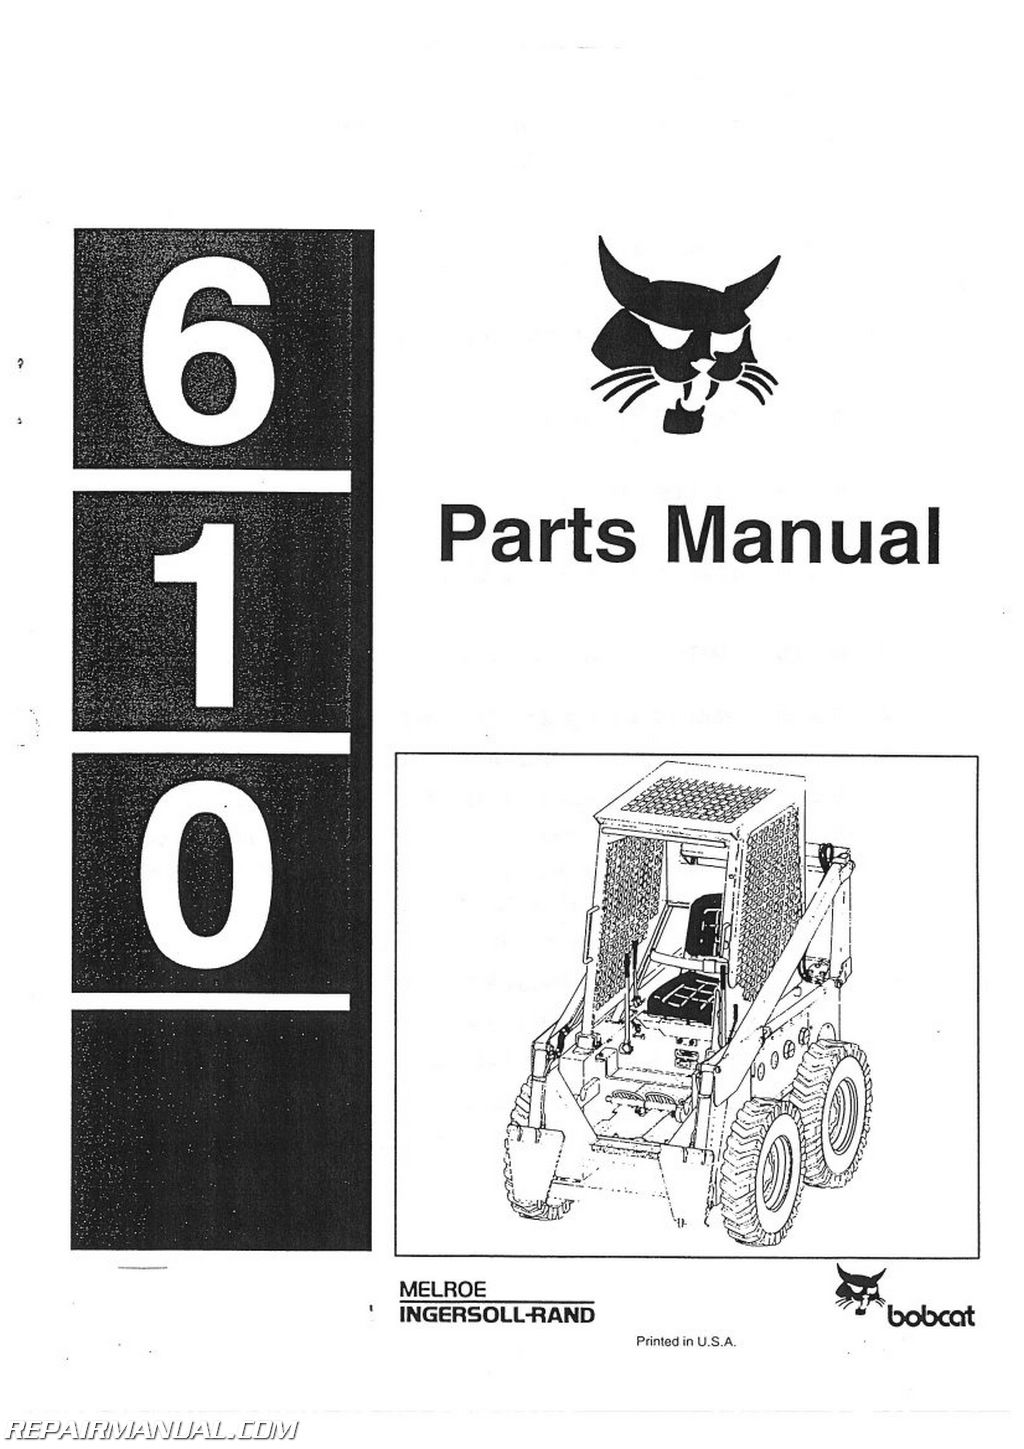 BC P 610_1 bobcat 610 parts manual